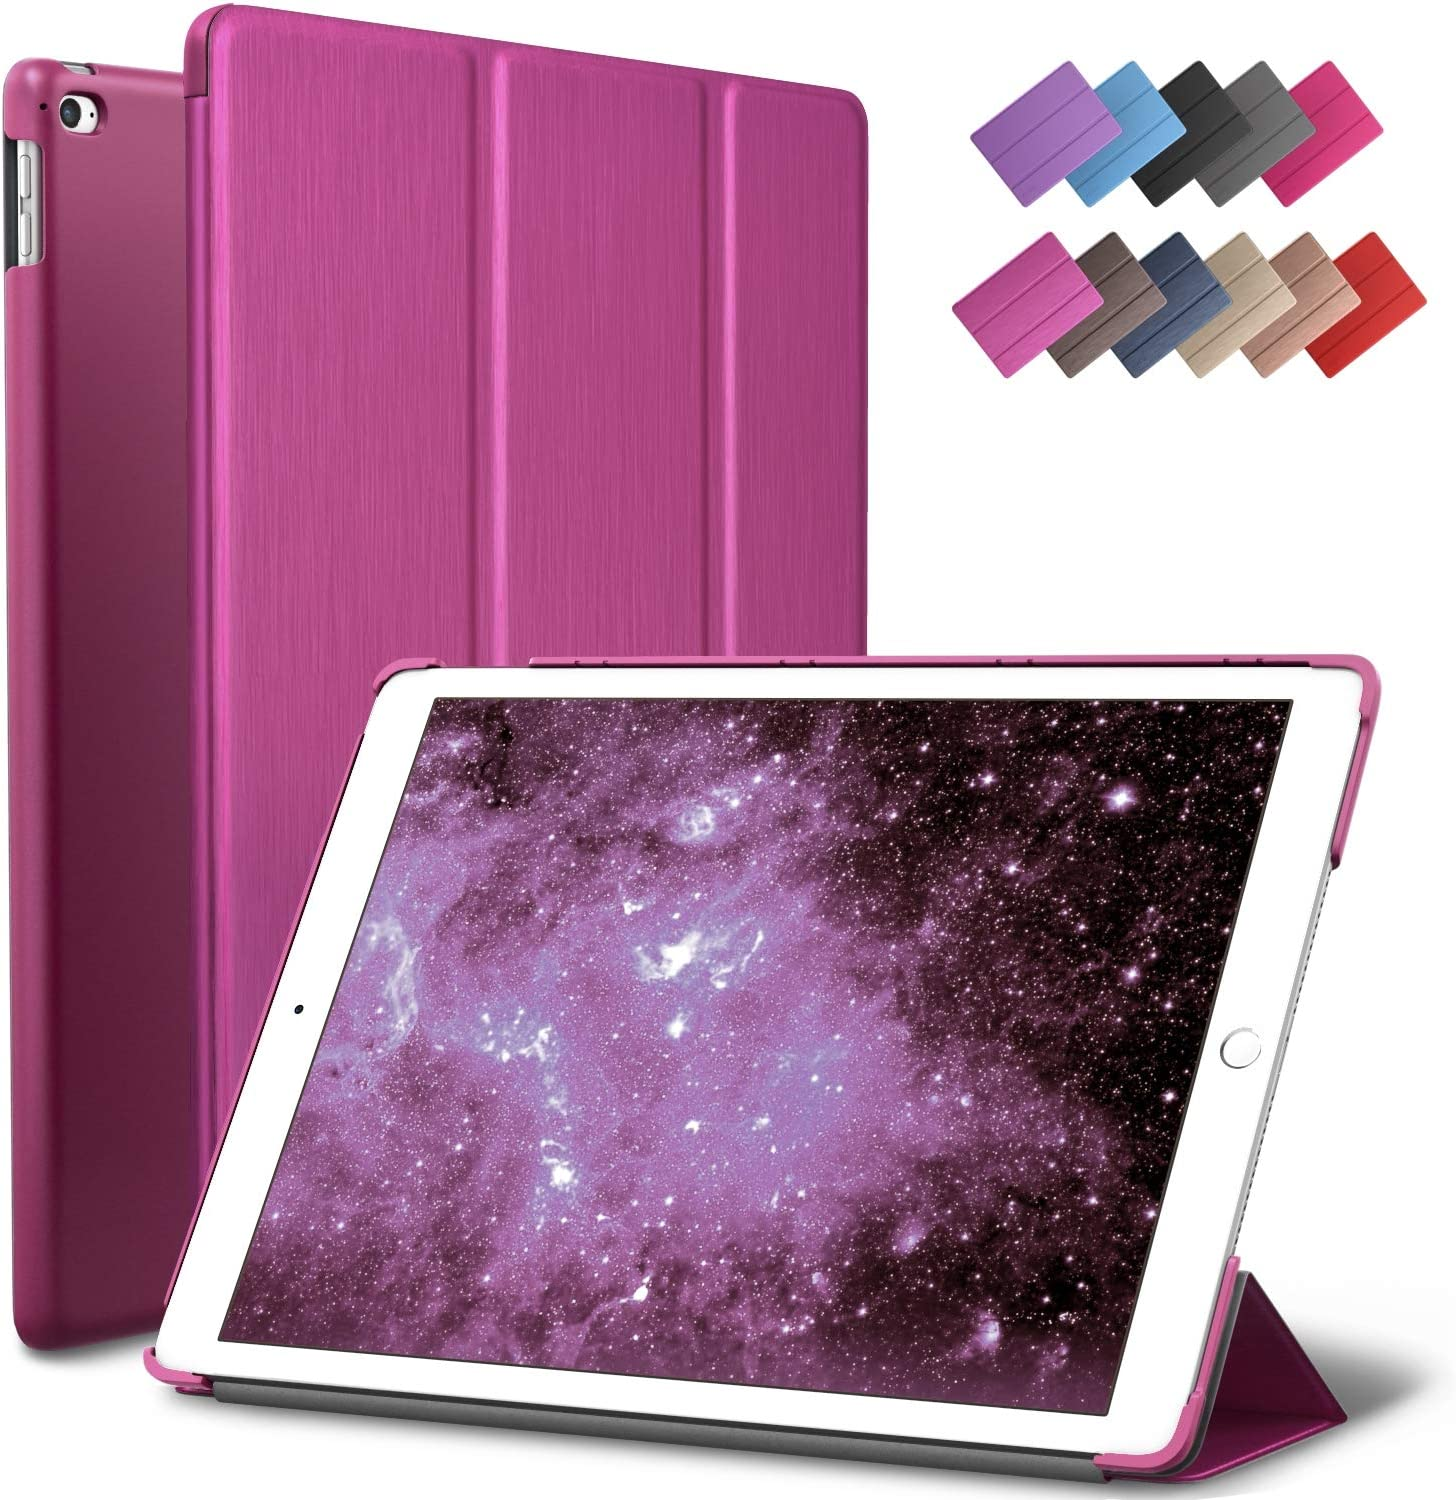 iPad Air 2 Case, ROARTZ Metallic Magenta Slim Fit Smart Rubber Coated Folio Case Hard Shell Cover Light-Weight Auto Wake/Sleep for Apple iPad Air 2nd Generation A1566/A1567 Retina Display